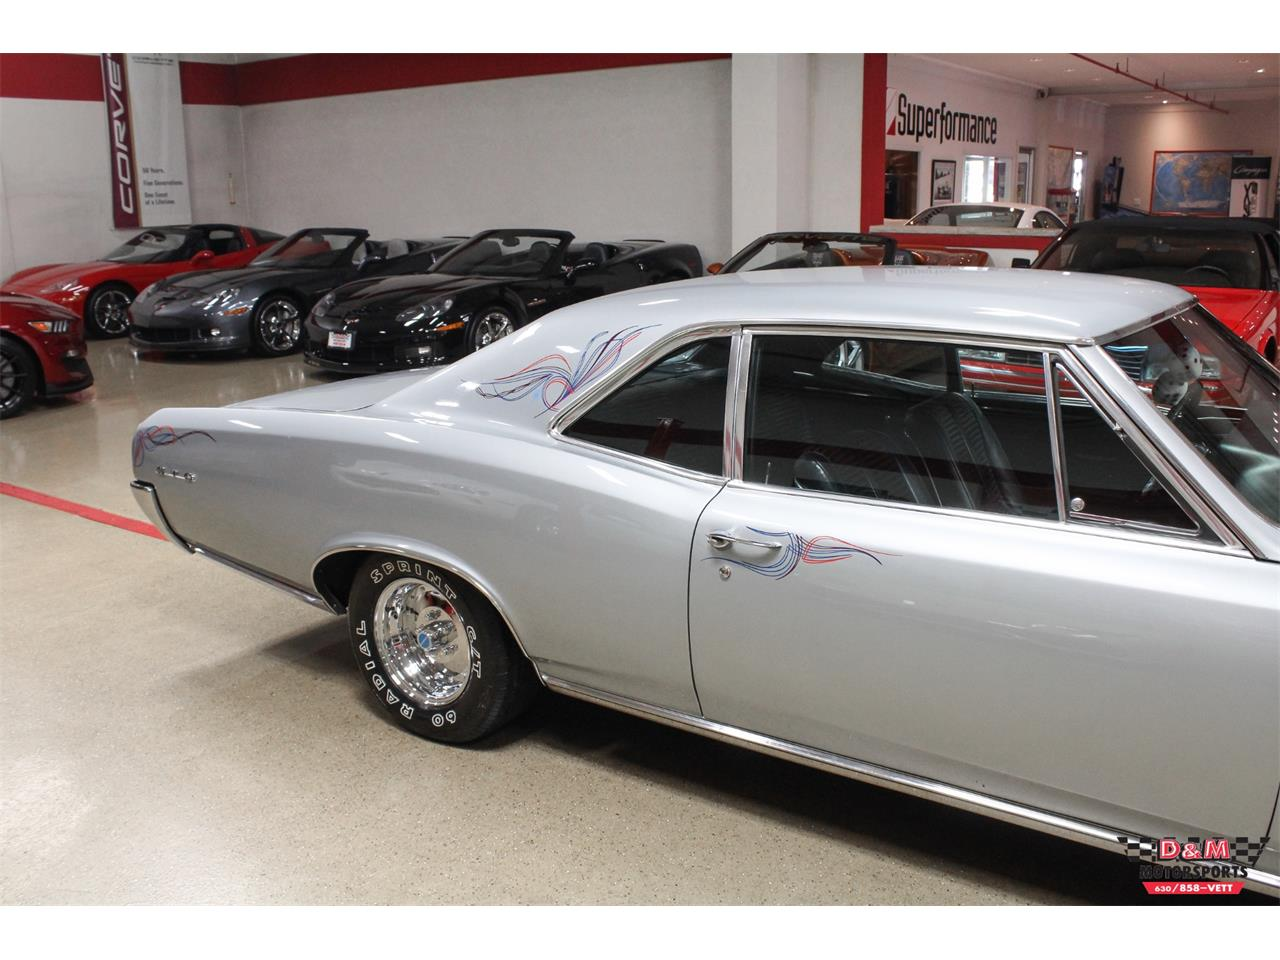 Large Picture of Classic '66 Pontiac GTO located in Illinois - $39,995.00 Offered by D & M Motorsports - O7FS